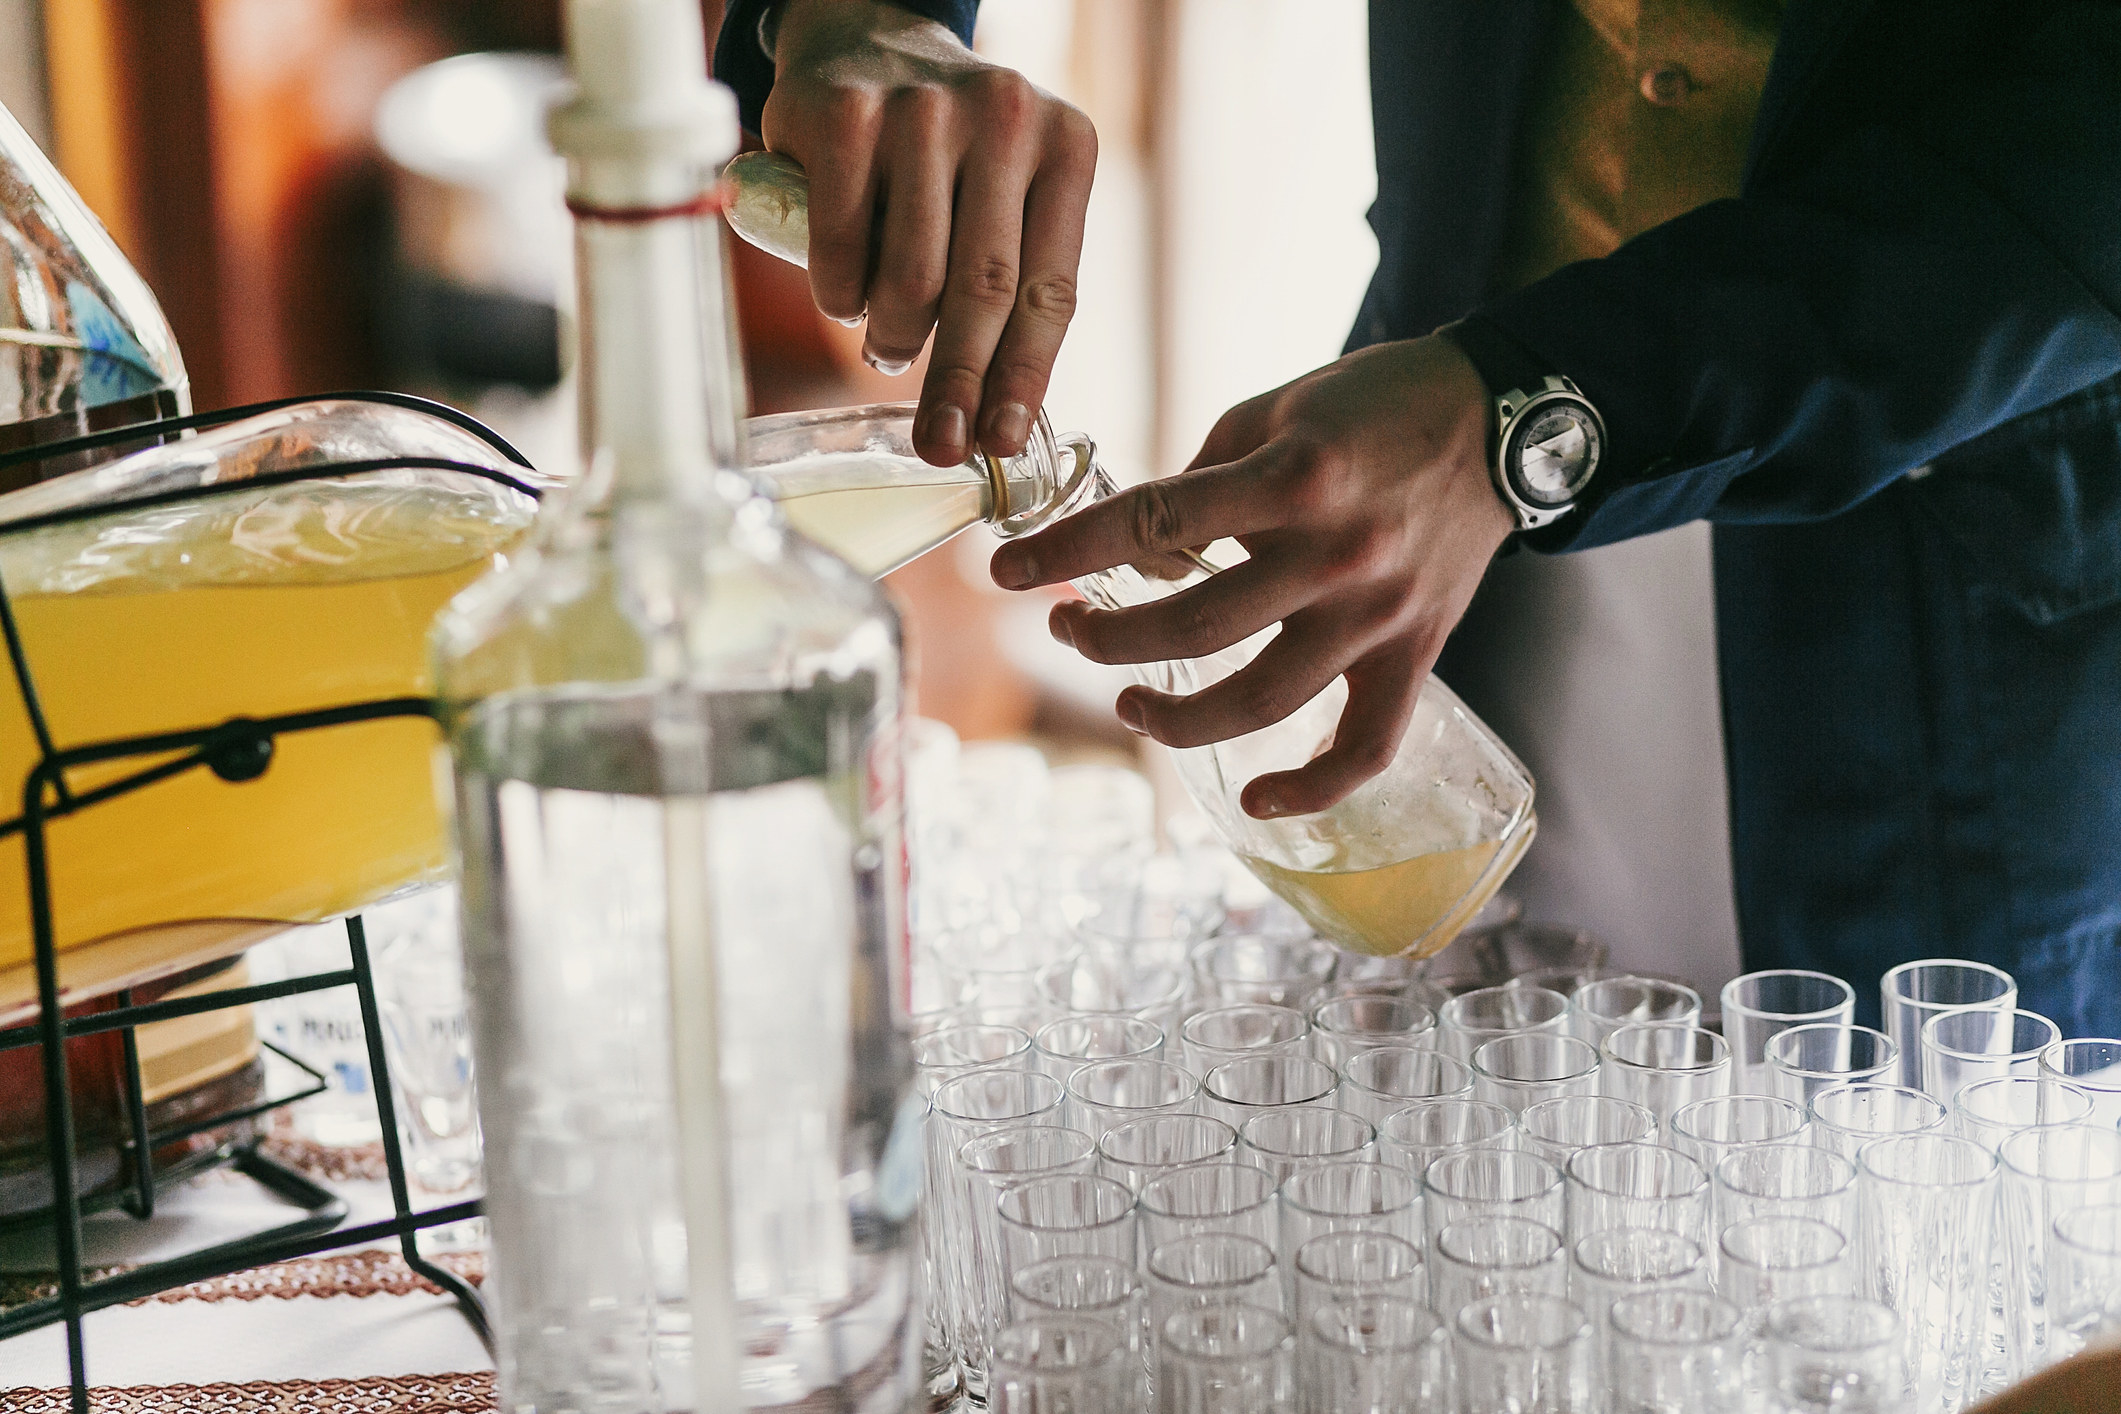 A waiter pouring a drink at a wedding party